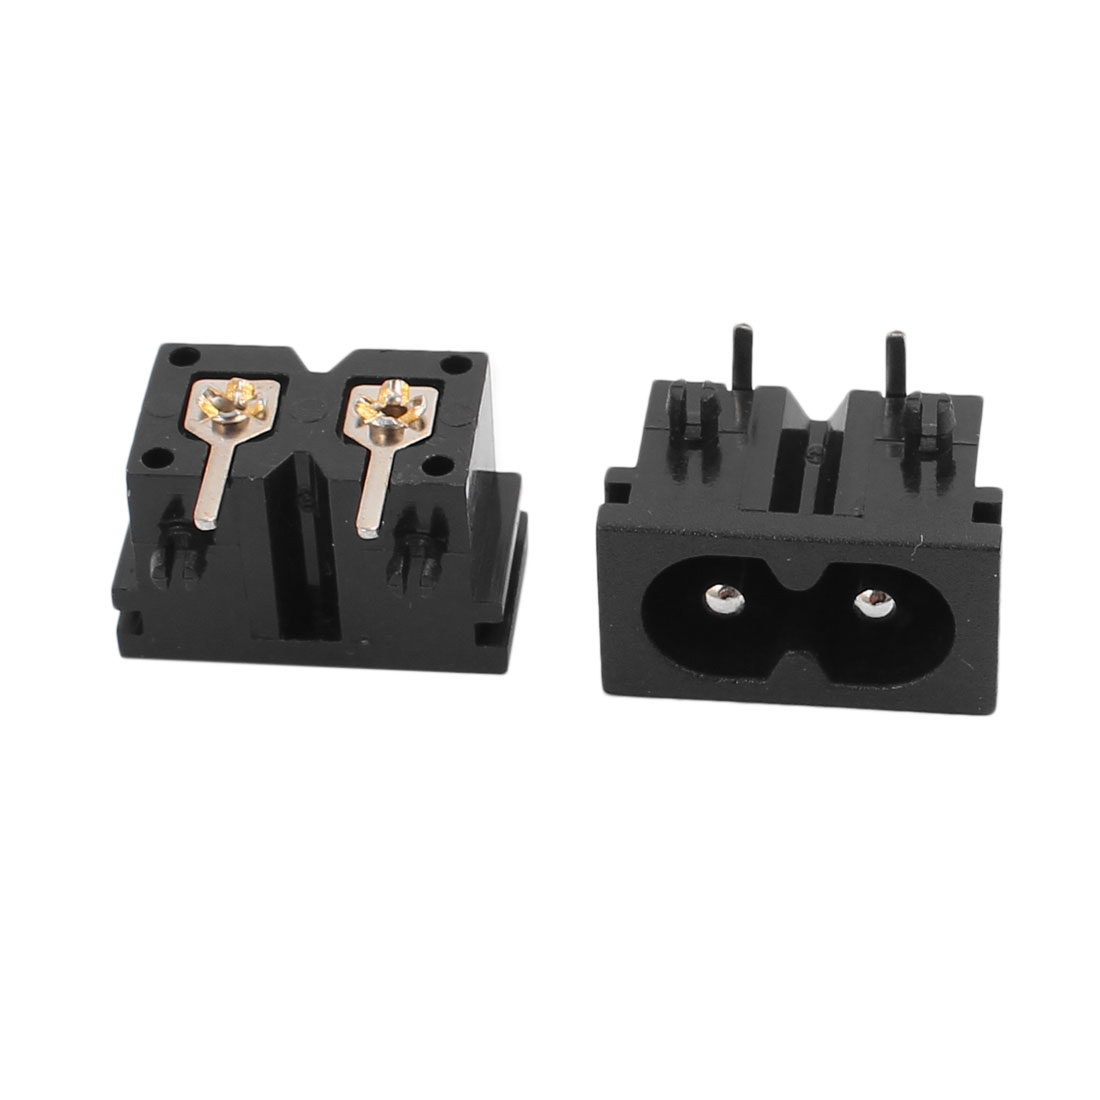 AC250V 2.5A BX-180-H01 IEC  Input Wiring Socket 2 Pins Copper Rhodium Power - image 1 of 2